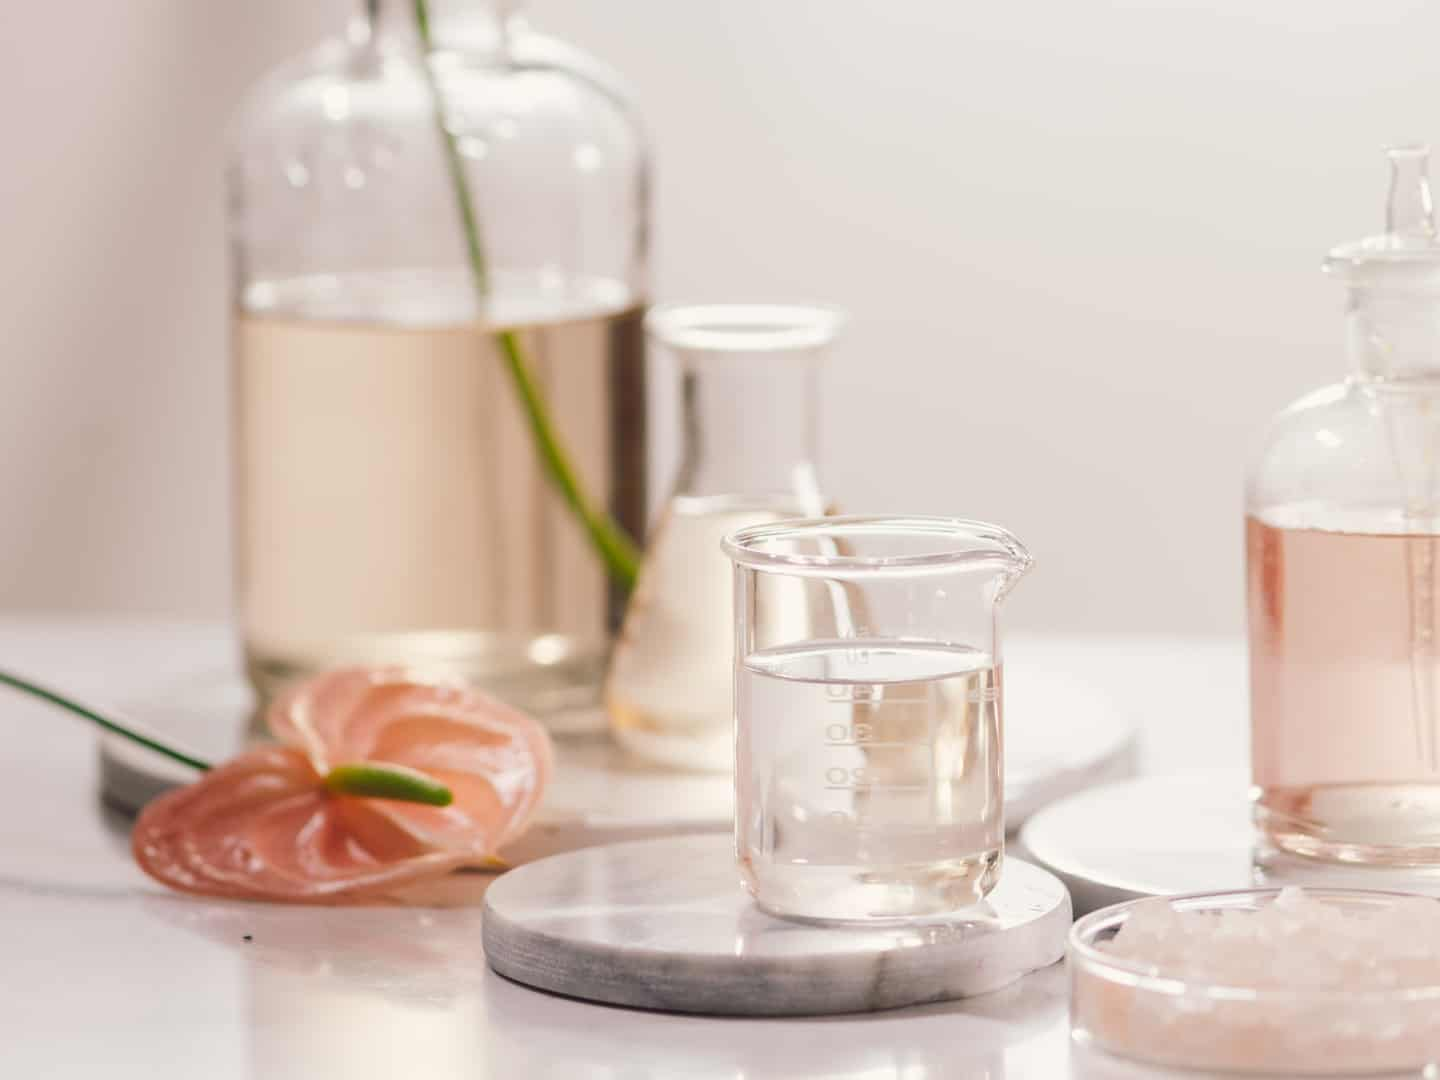 fragrance in products